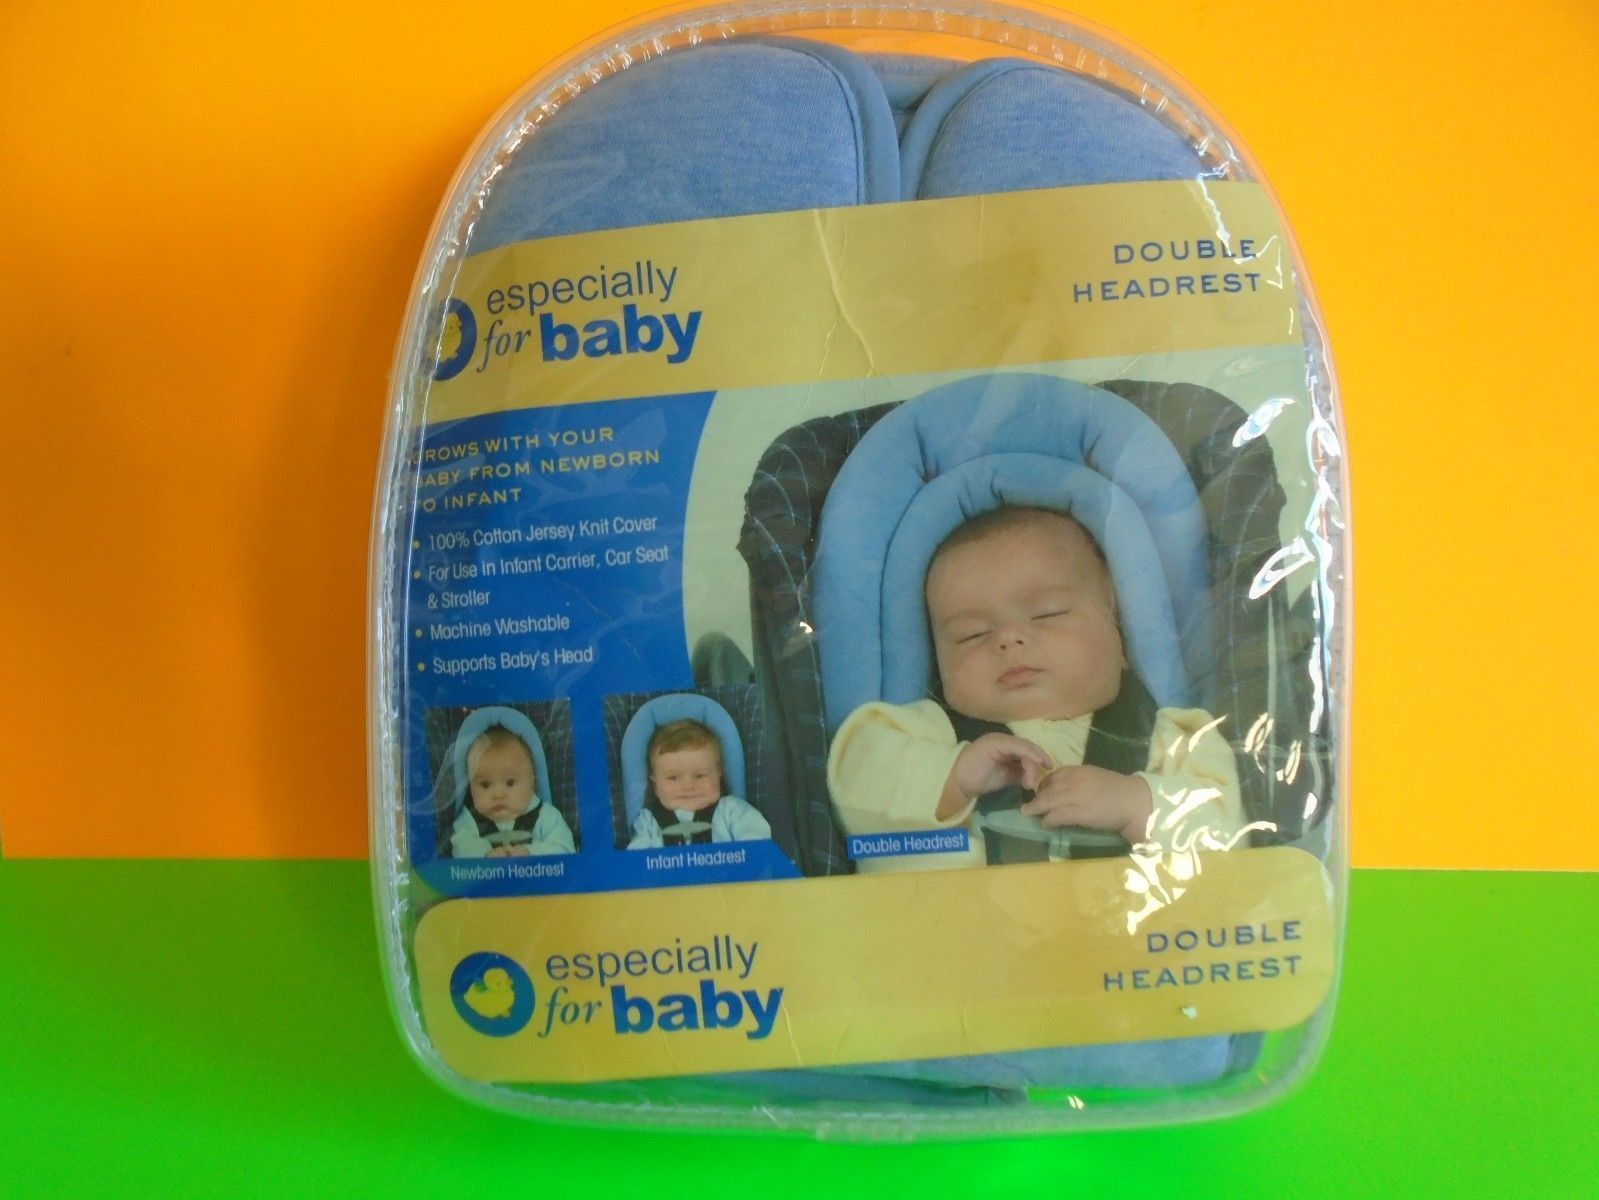 ESPECIALLY FOR BABY NEWBORN INFANT BLUE DOUBLE HEADREST STROLLER CAR NEW/SEALED - $10.99